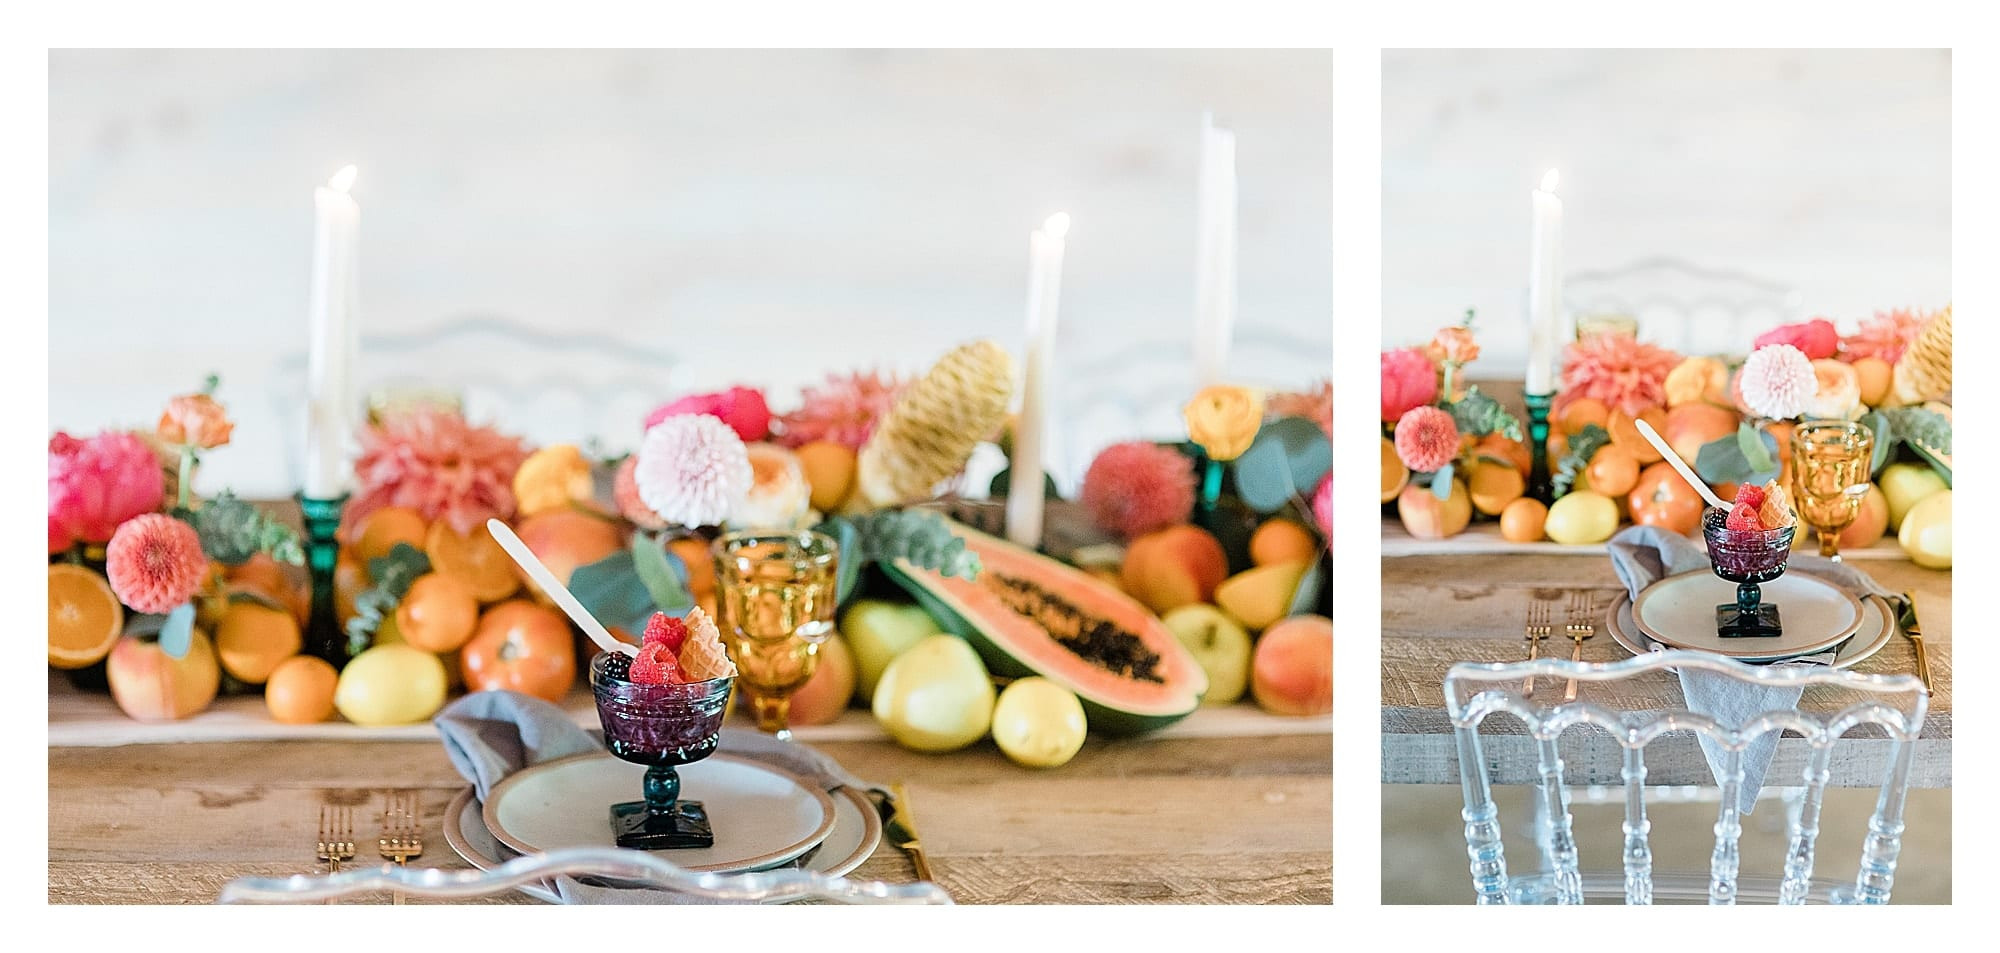 berry dessert in blue glass decorative cup sitting on plate on wooden wedding reception table